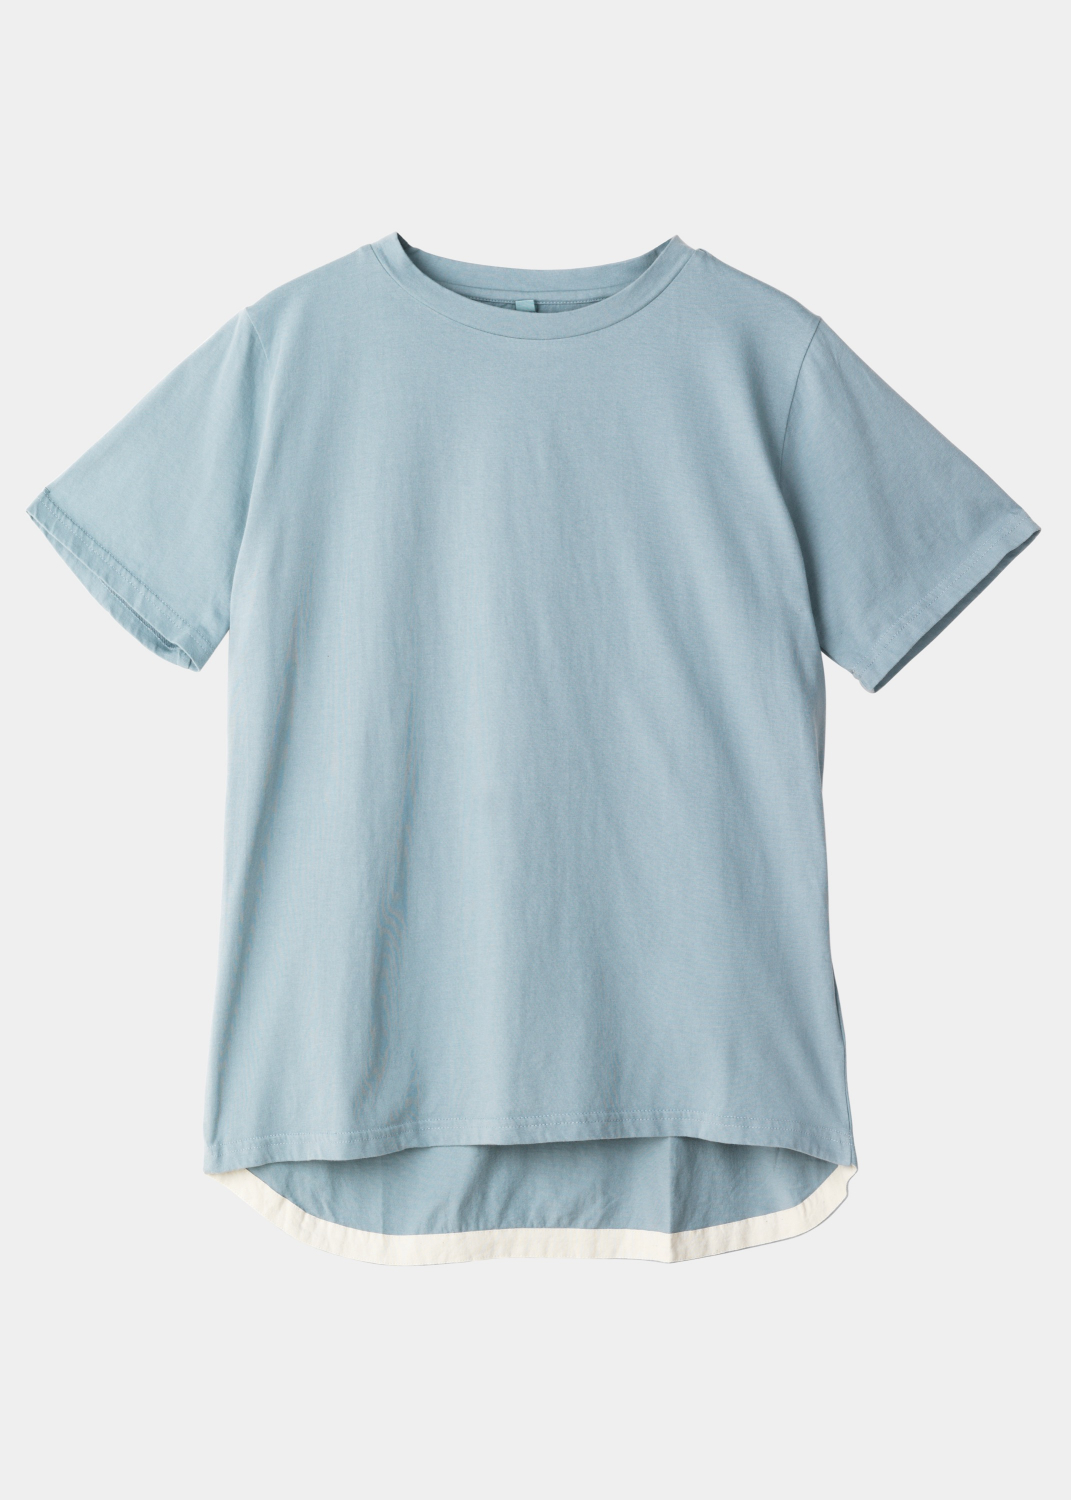 Blouses & Tees - Short Sleeve Tee